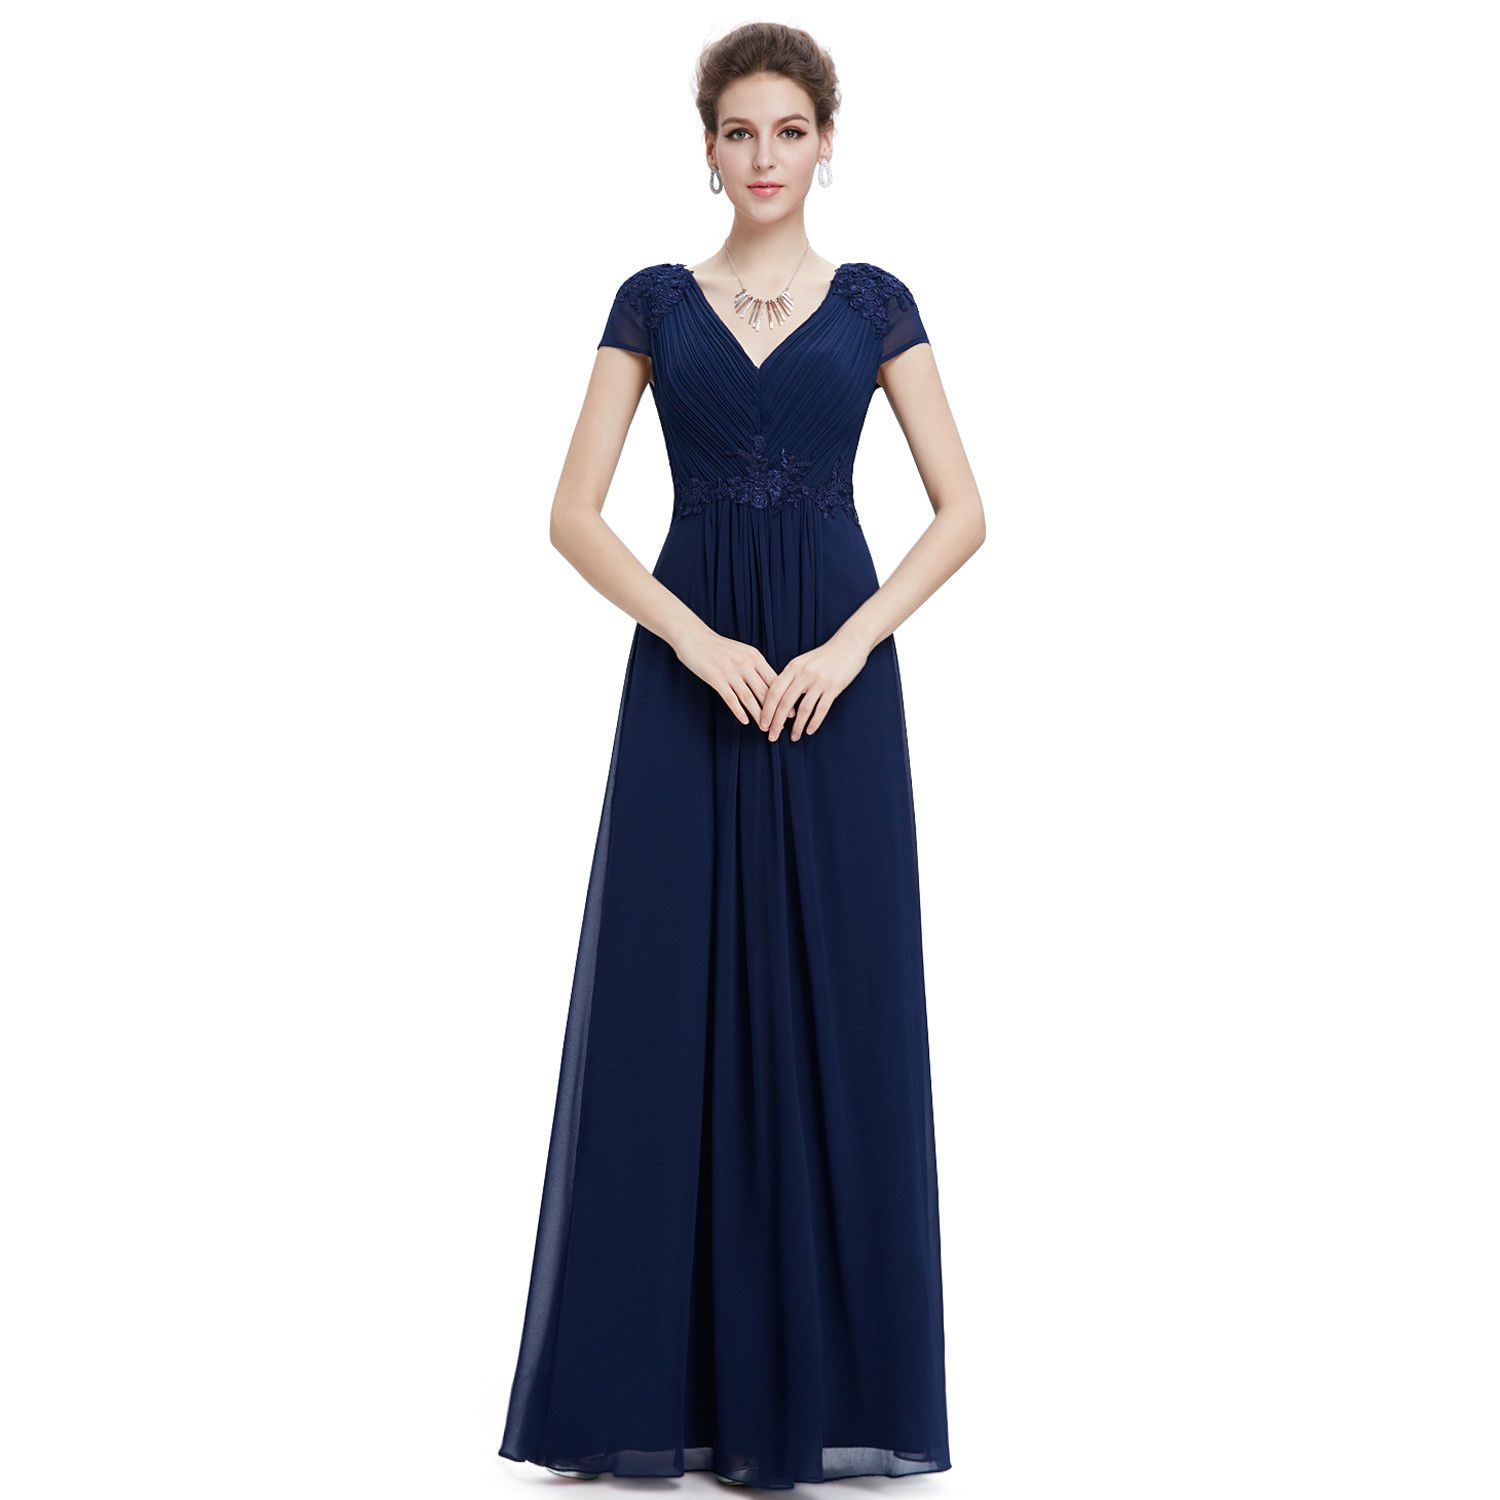 Awesome awesome wedding guest dress vneck evening dress navy